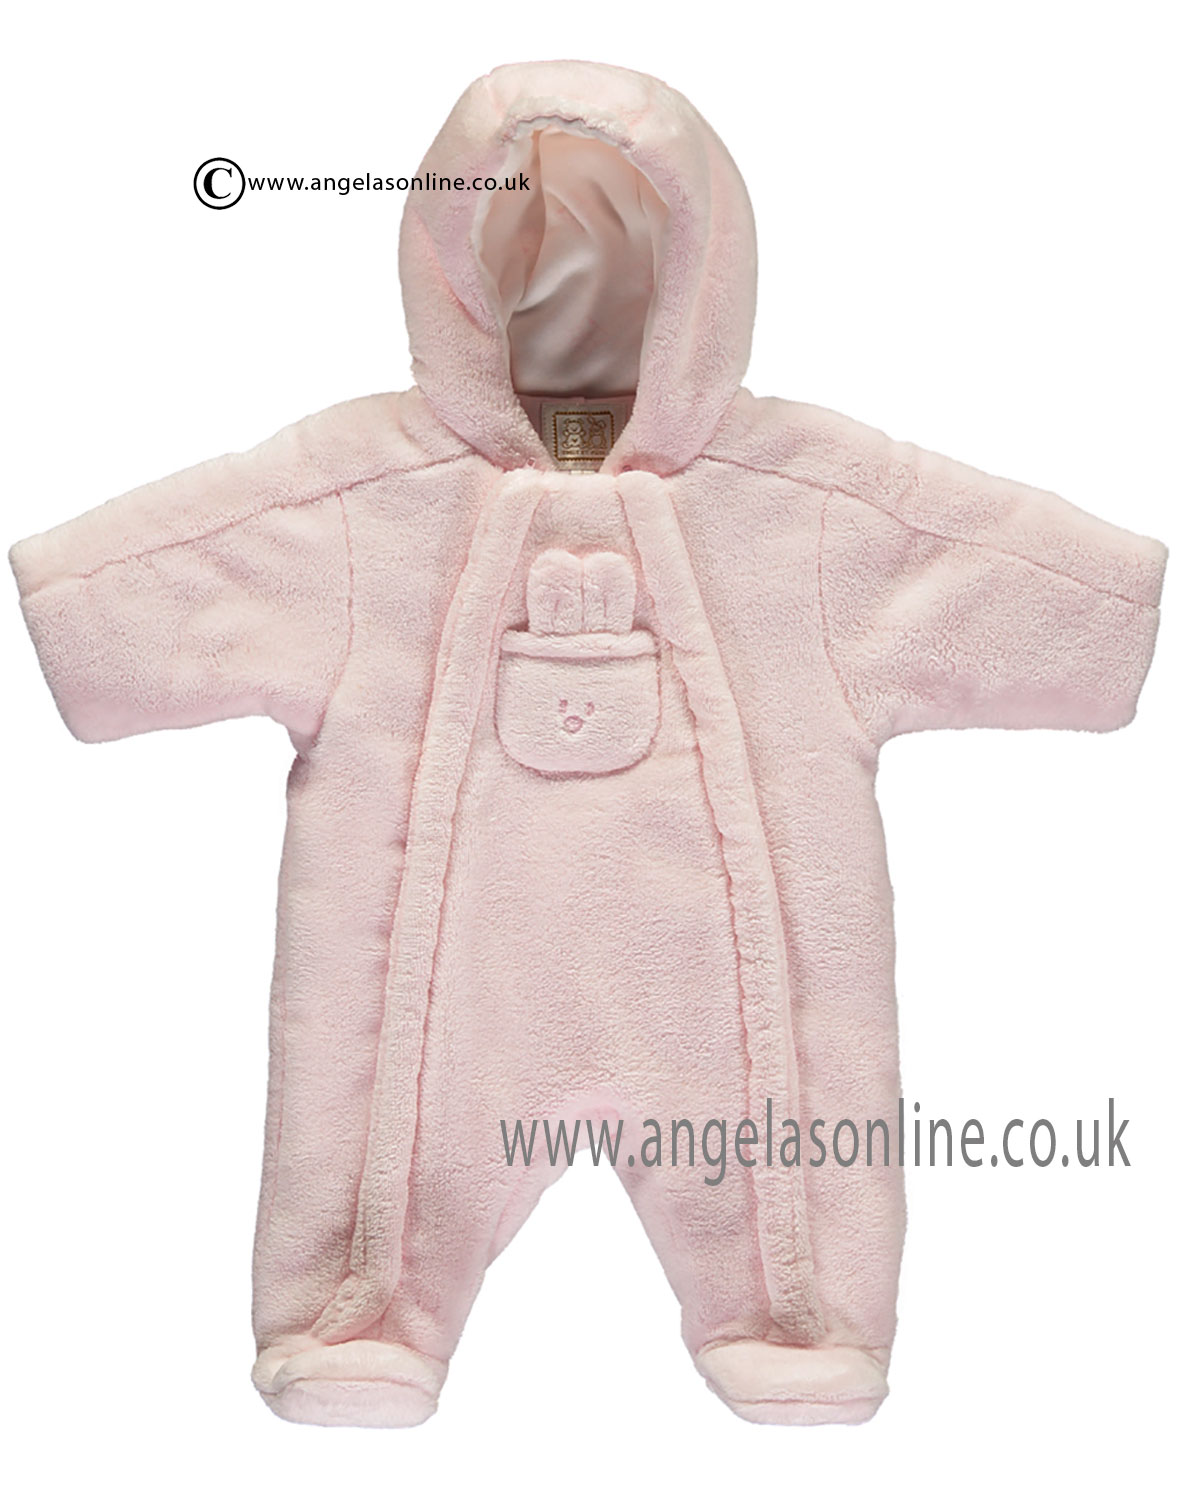 91398d05c16ad Emile et Rose baby girls pramsuit & bunny pocket Laura 1736pp-17 Pk